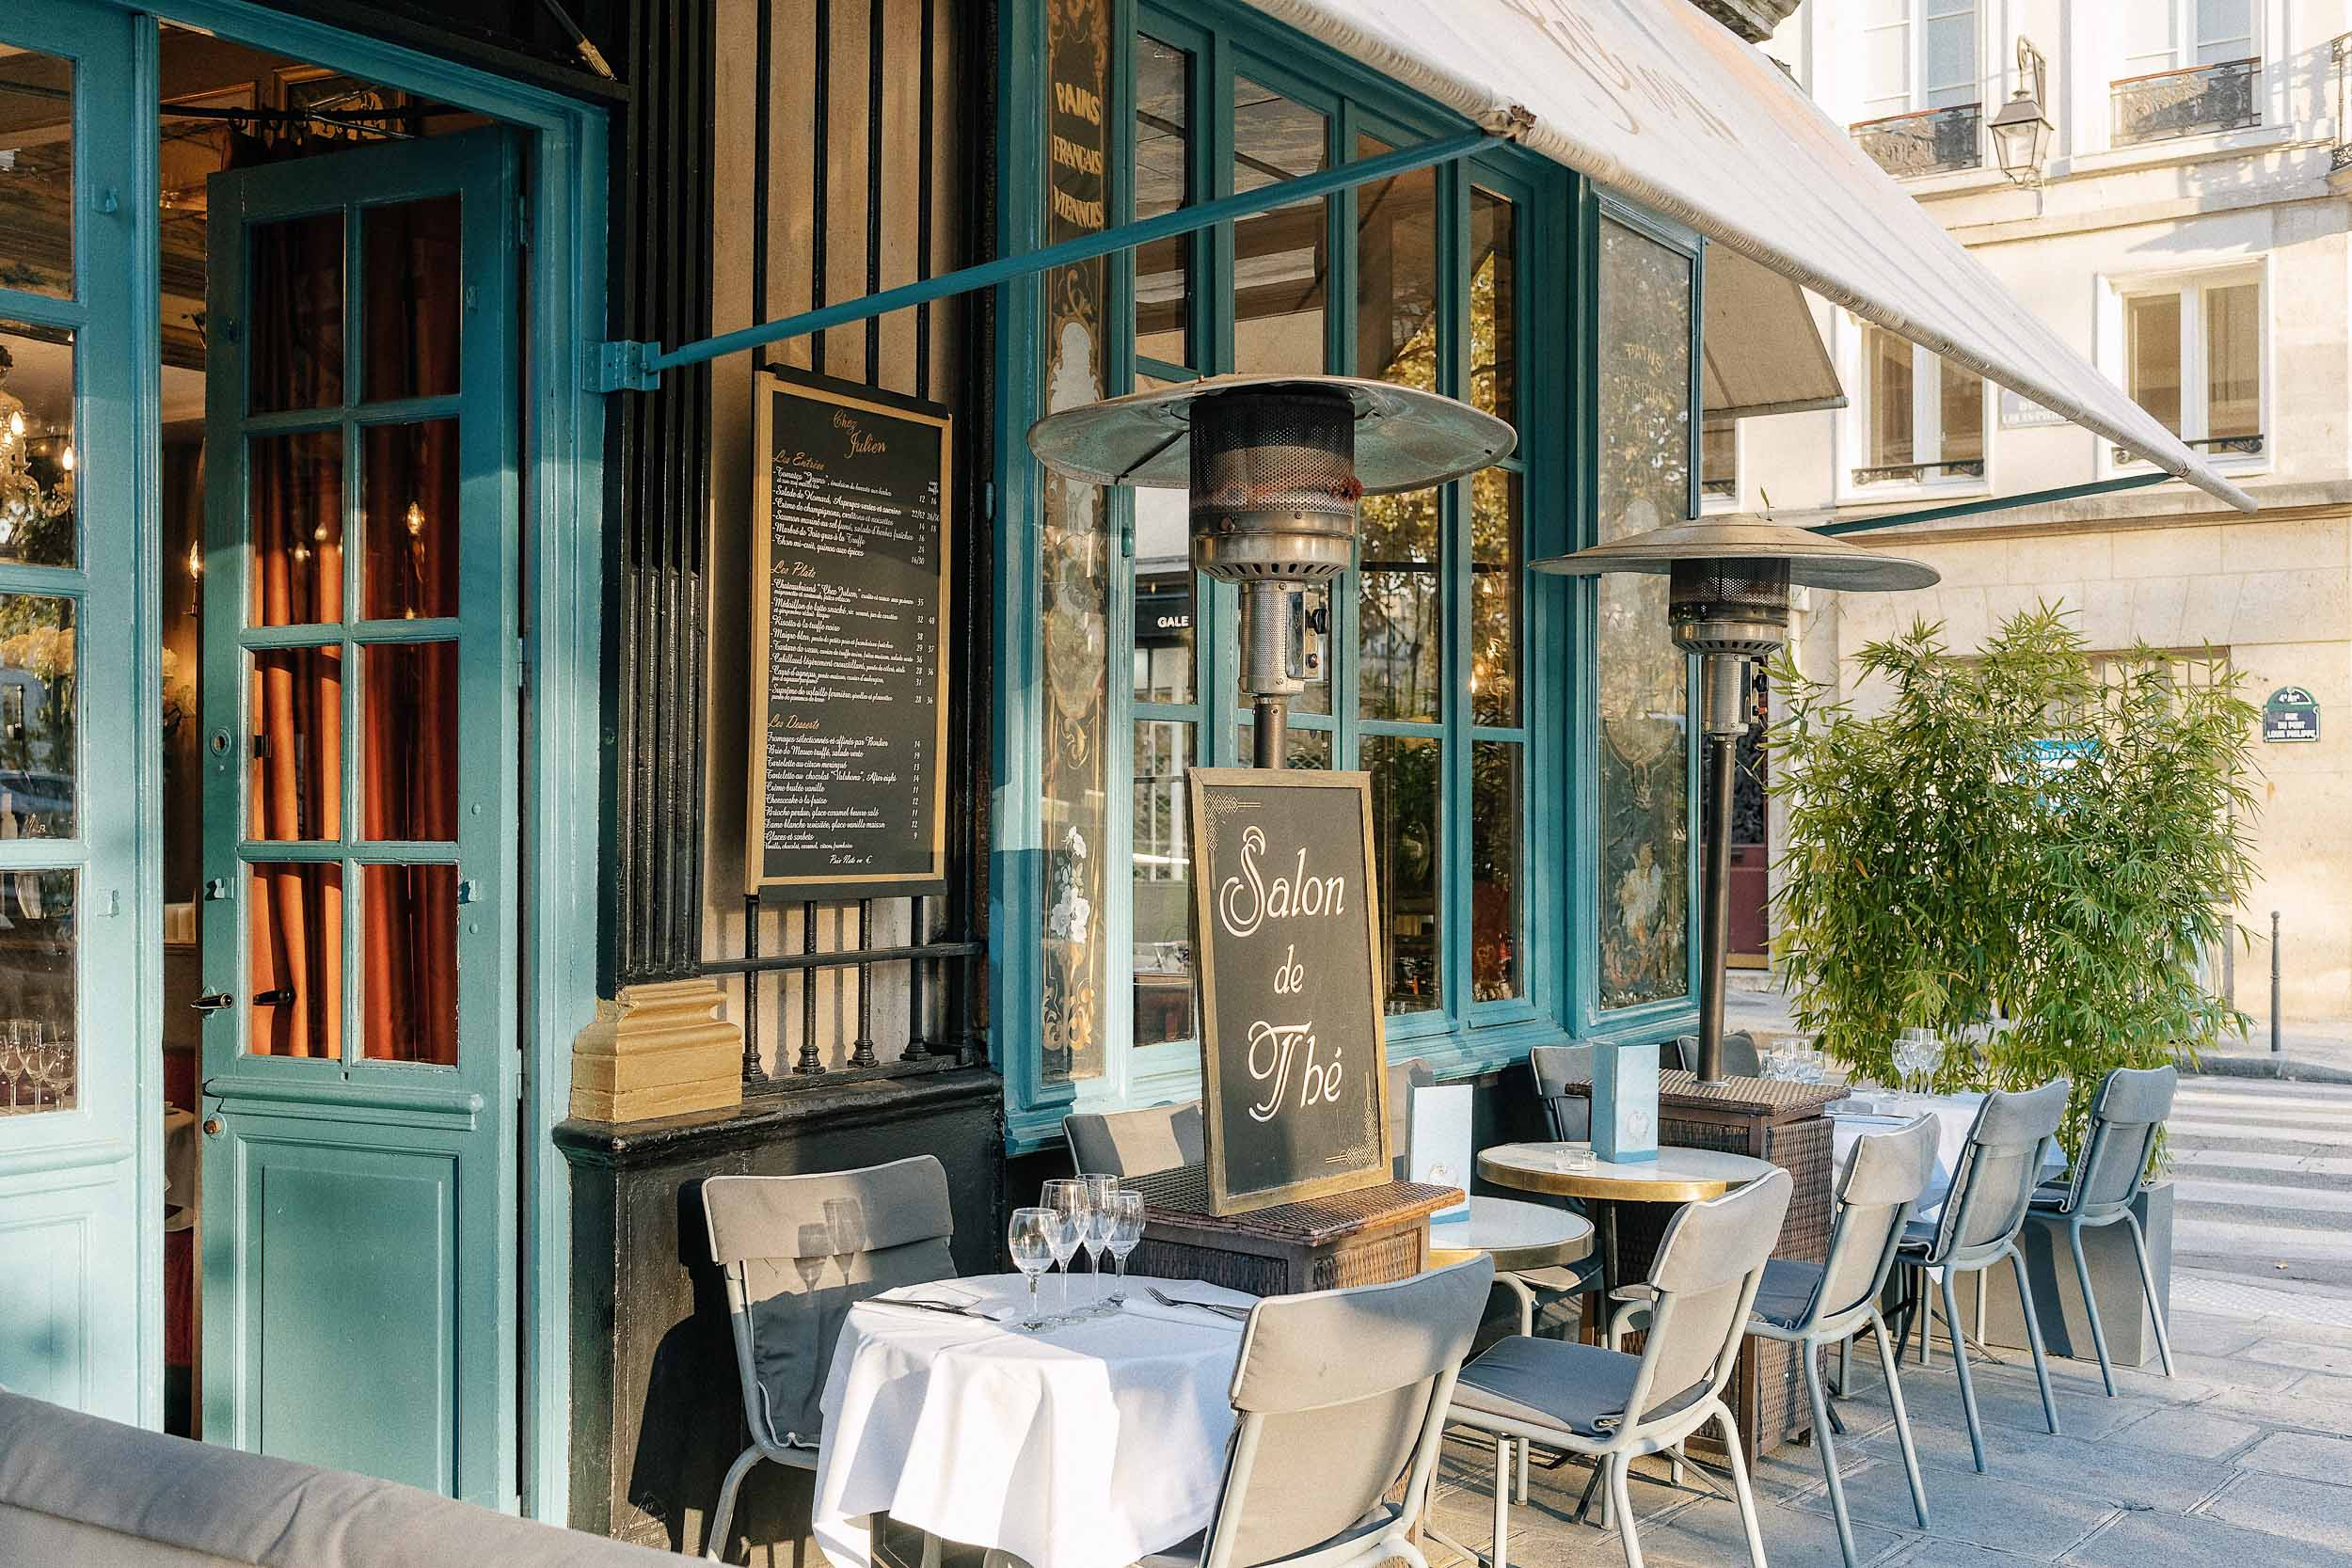 The best food in Paris: what to eat and where to eat it